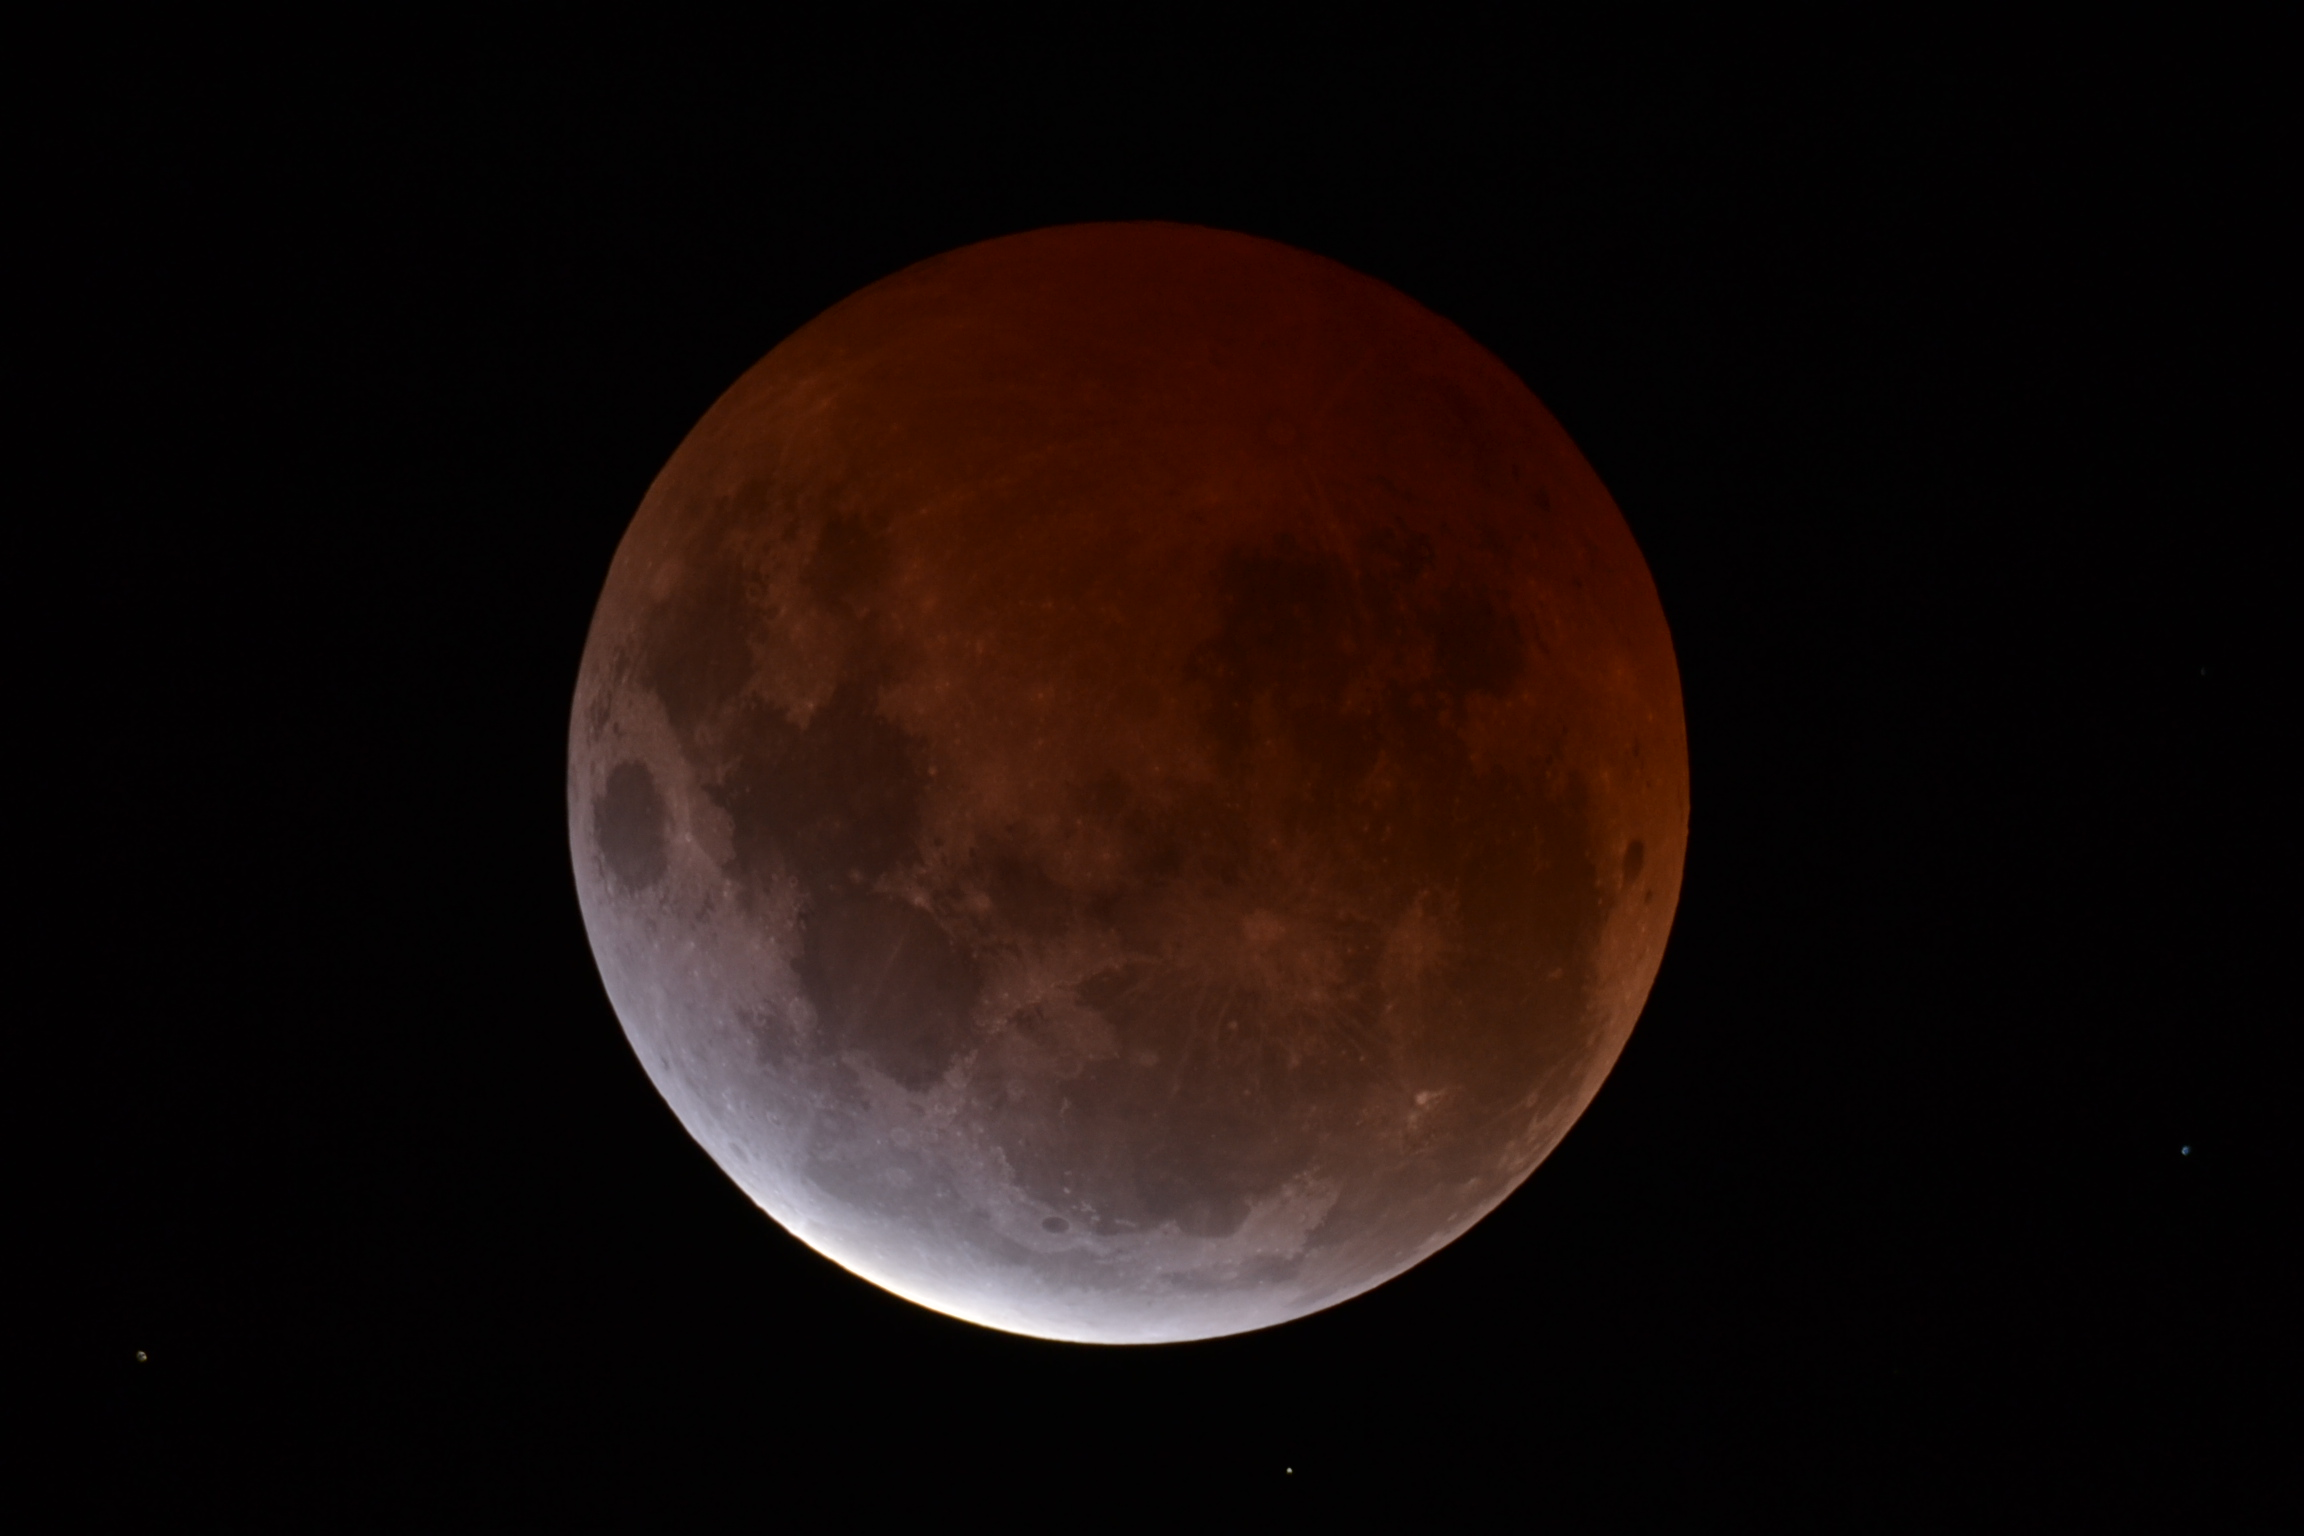 april 4 2015 total lunar eclipse in india A total lunar eclipse will occur on april 4, 2015 this is the shortest total lunar eclipse of the century and third of four total lunar eclipses separated by approximately 6 months, a rare phenomenon astronomers call a 'tetrad.